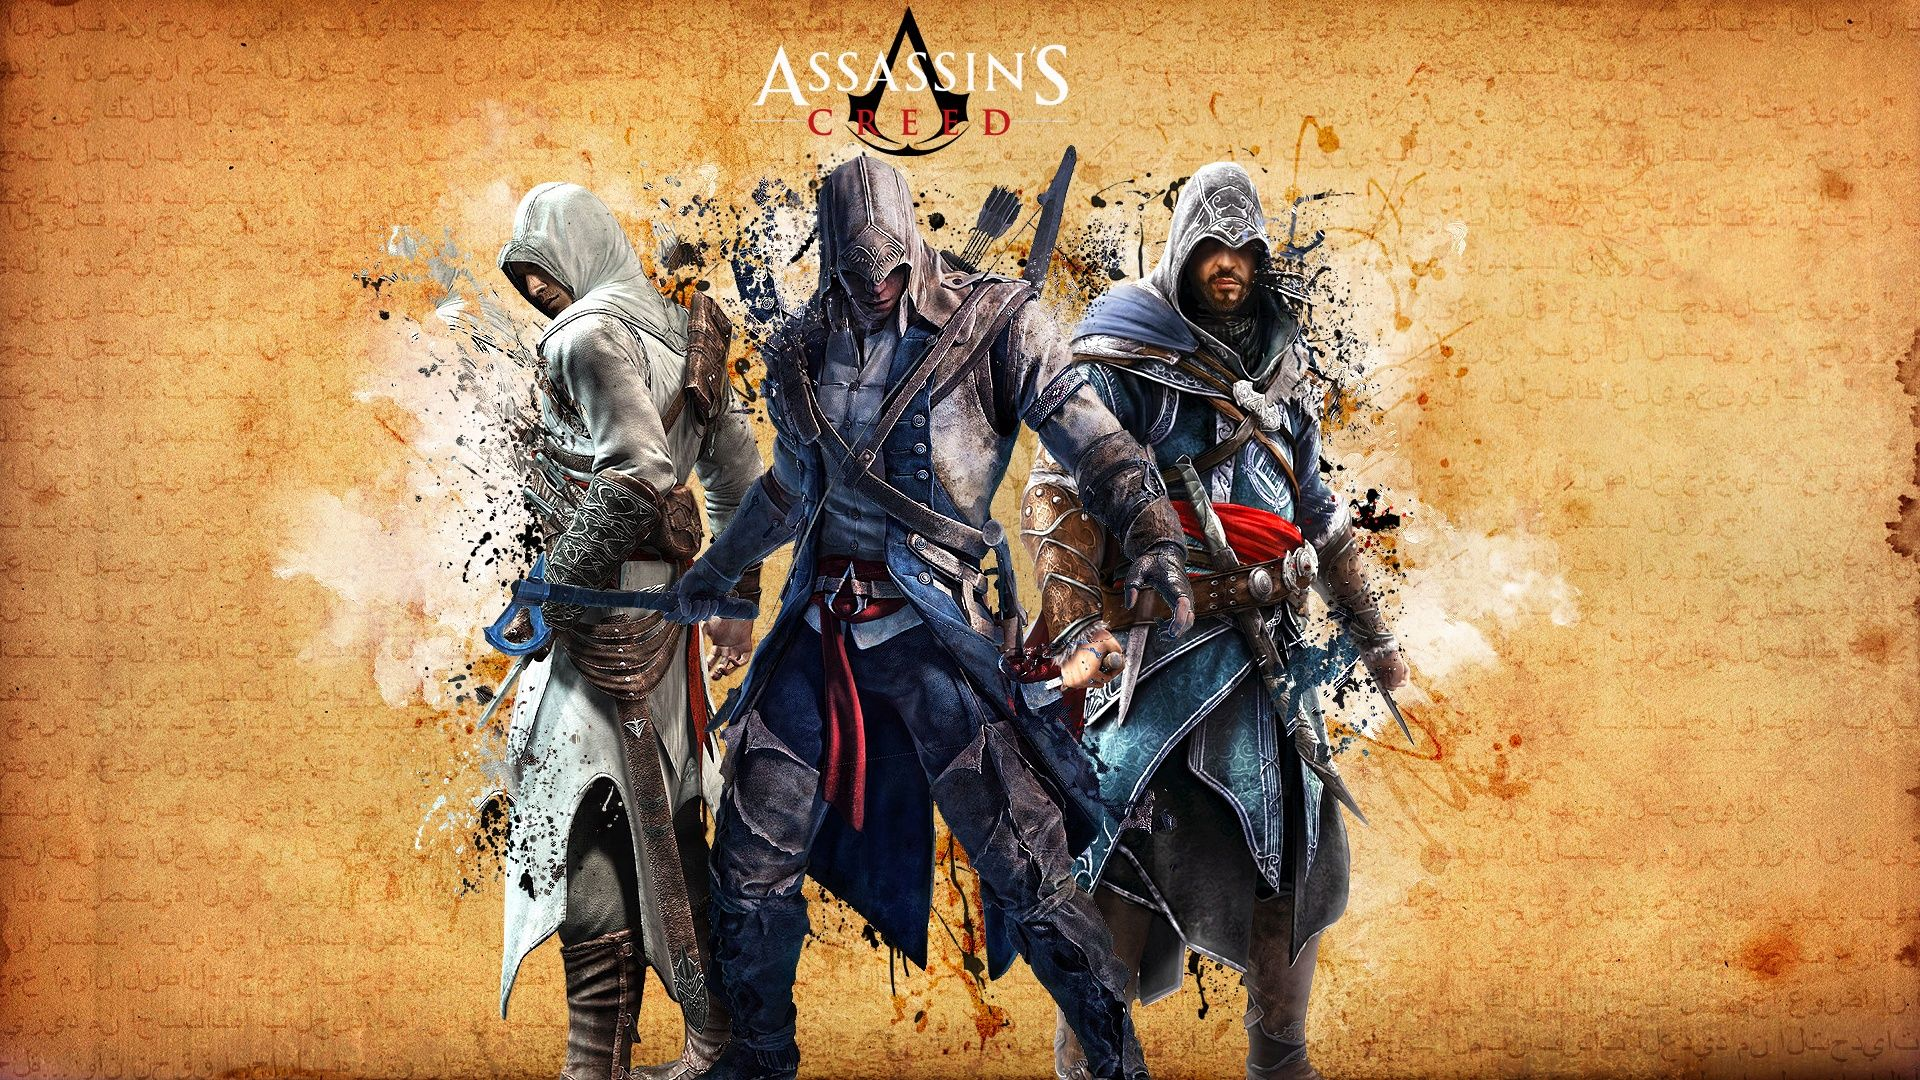 Assassins Creed Wallpaper, Assassin 3 To Your Desktop